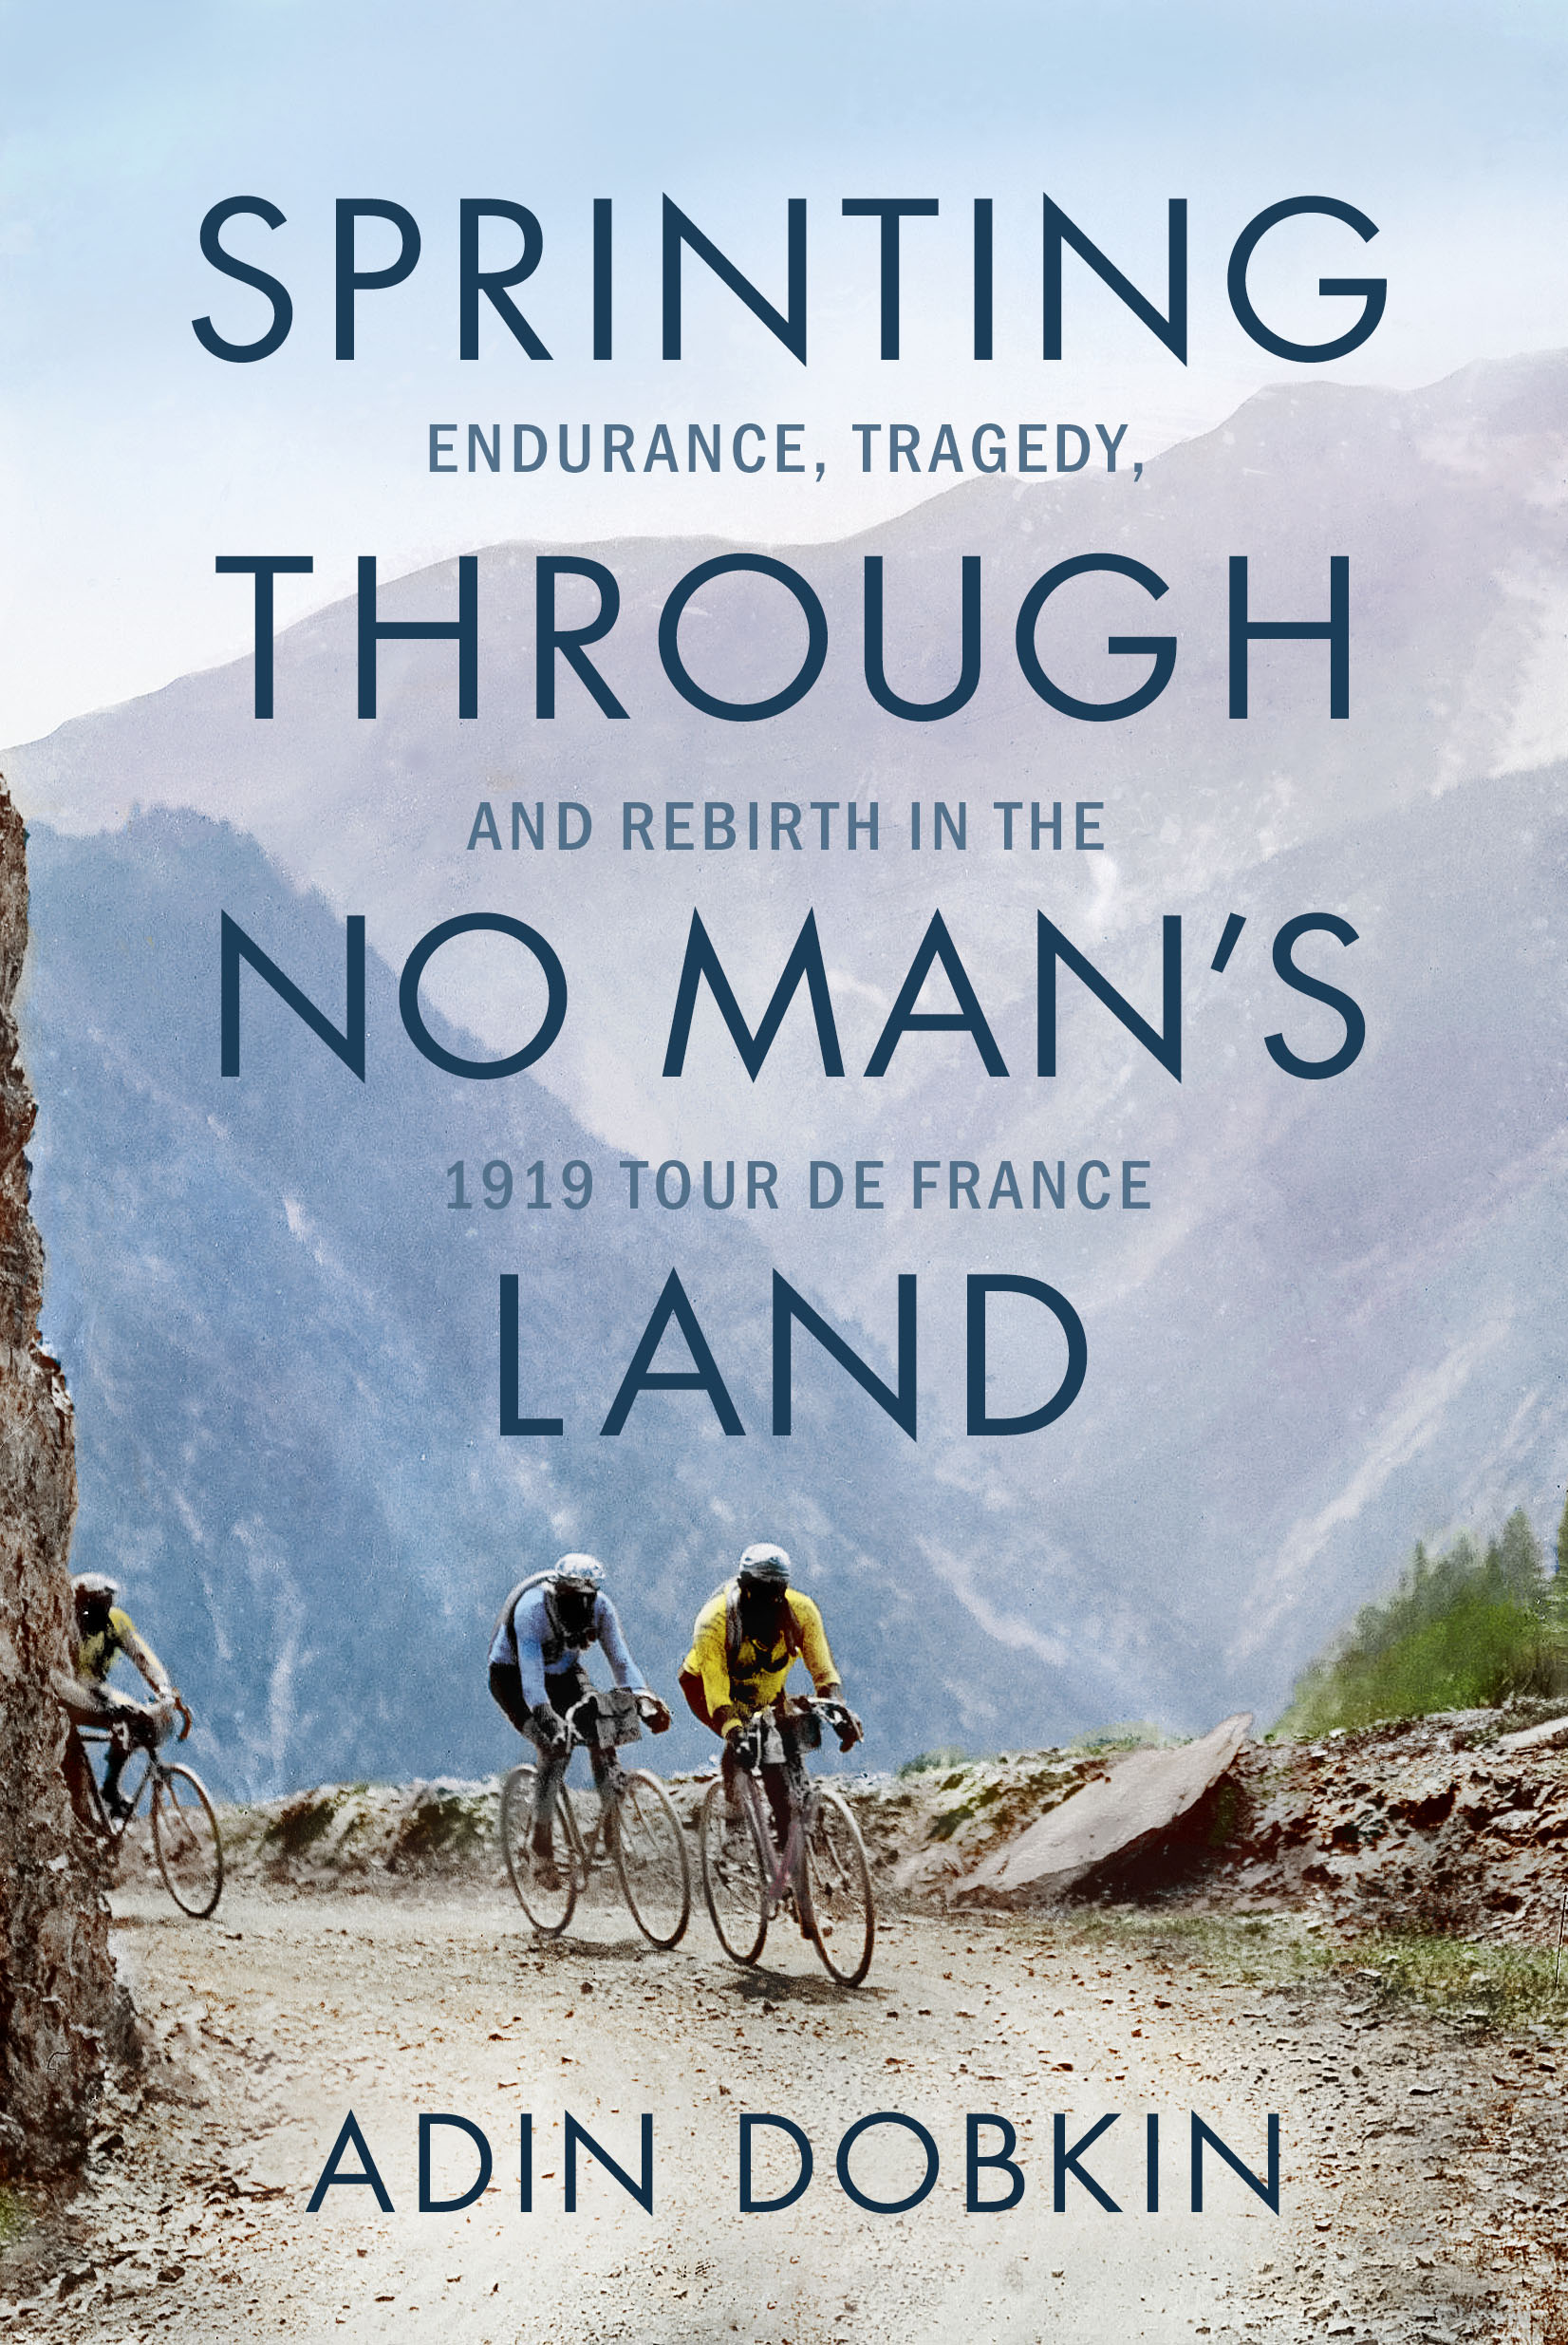 Virtual Book Launch: Sprinting Through No Man's Land by Adin Dobkin in conversation with Phil Klay